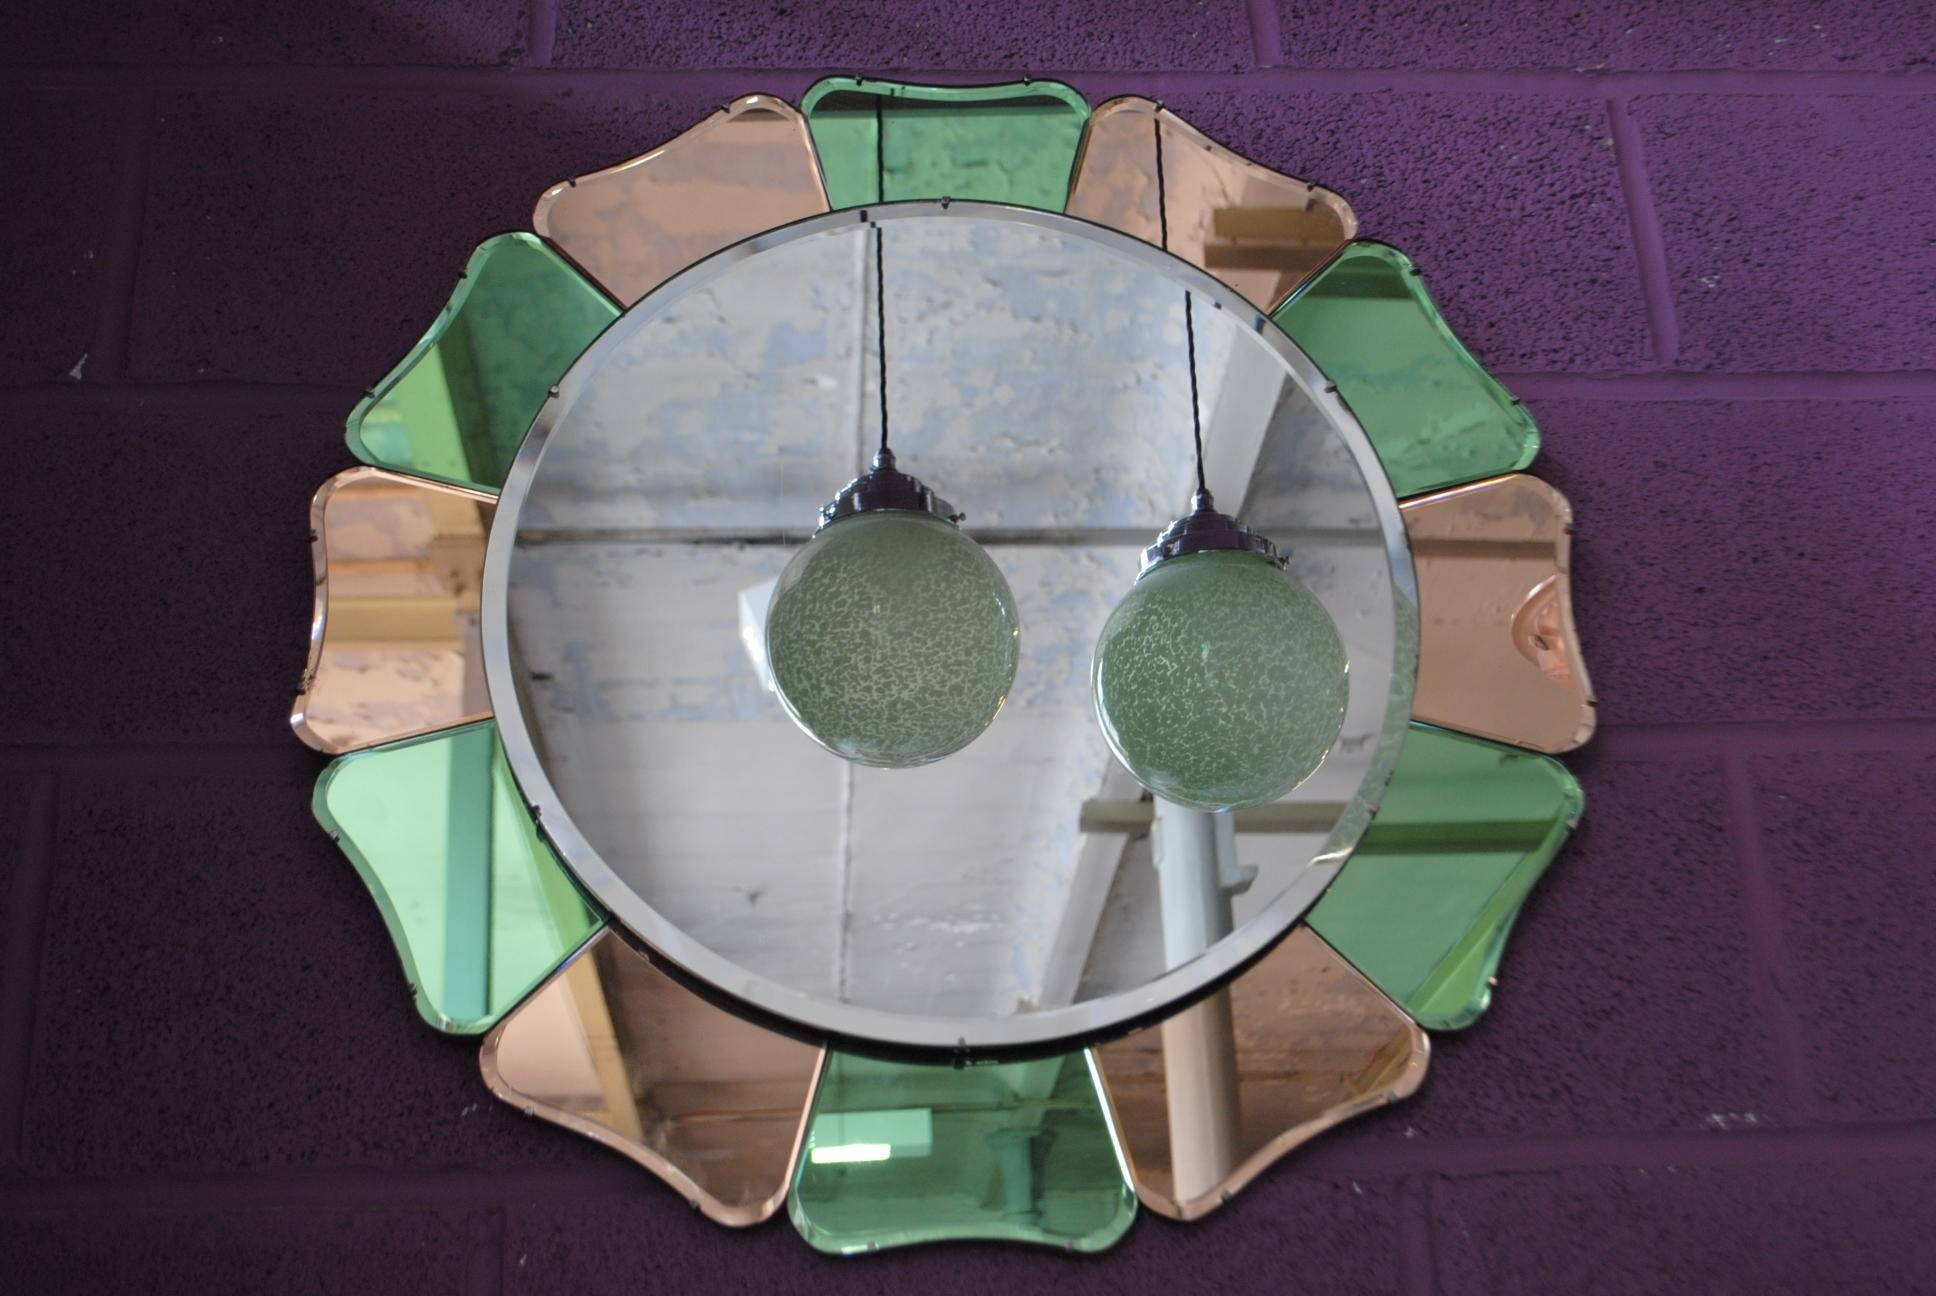 Petal Shape Original Art Deco Mirror || Cloud 9, Art Deco throughout Original Art Deco Mirrors (Image 21 of 25)